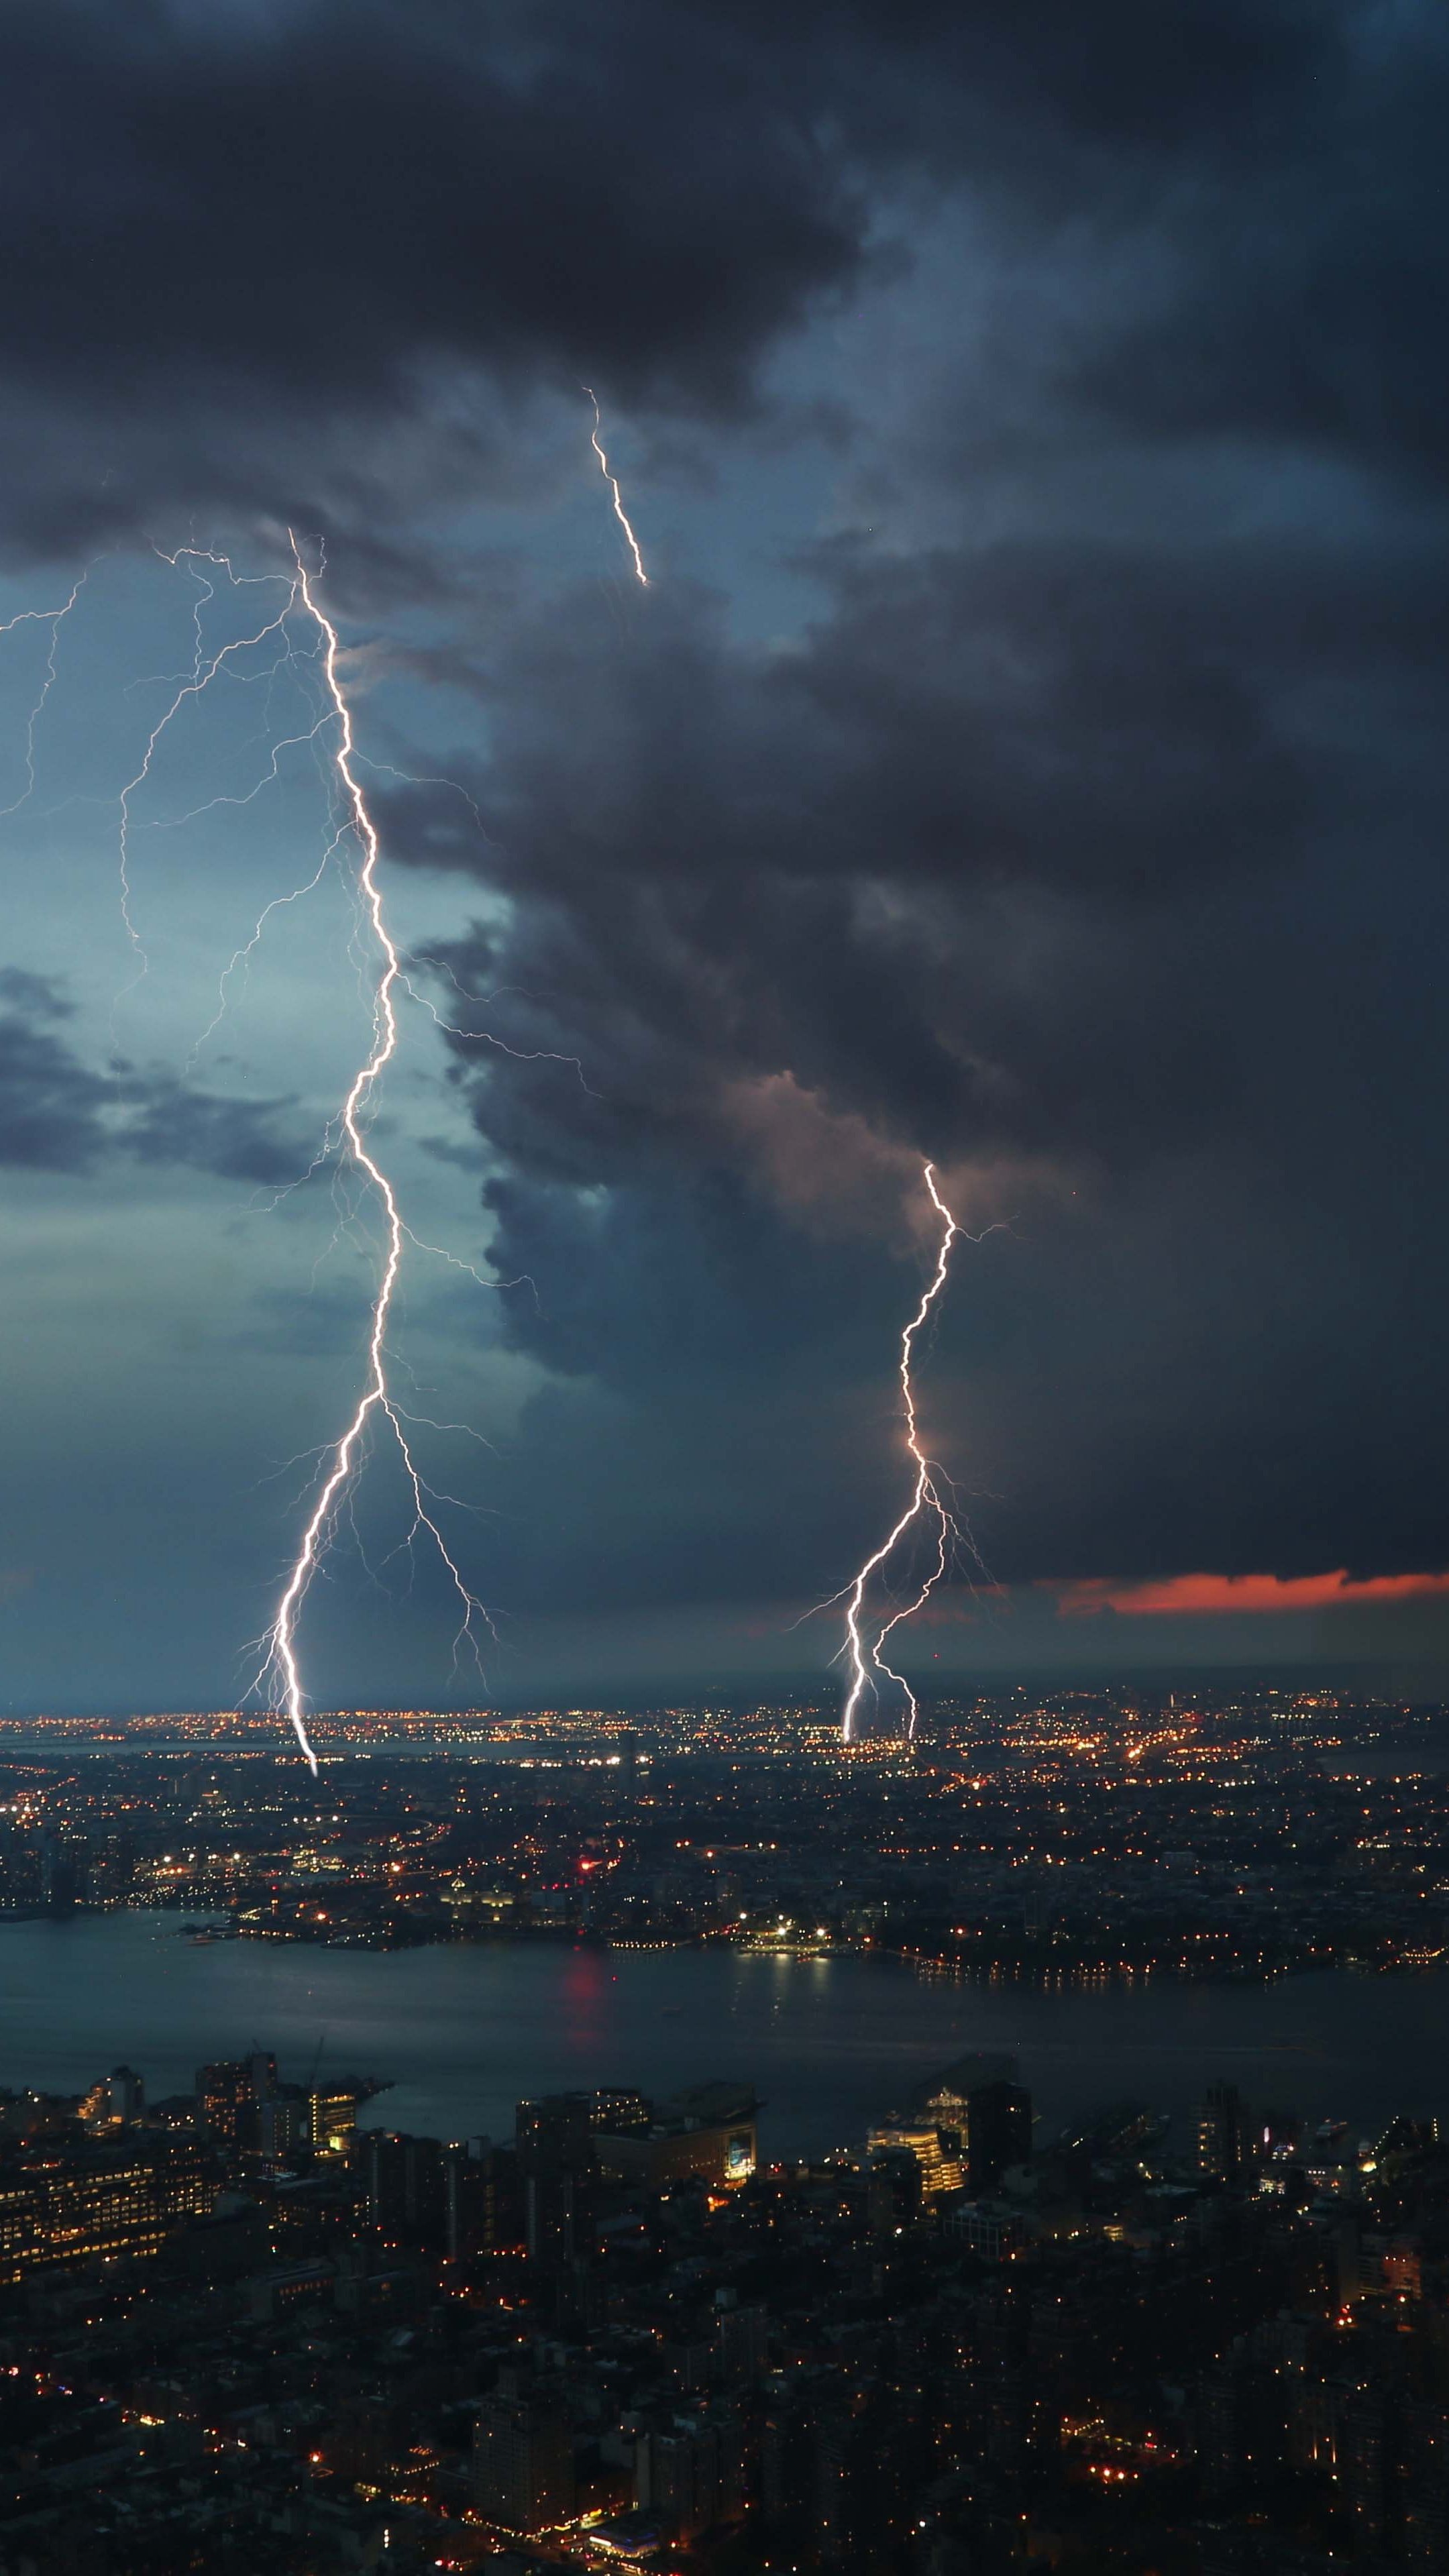 #Places #nightcity #thunderstorm #topview #wallpapers hd 4k background for android :)